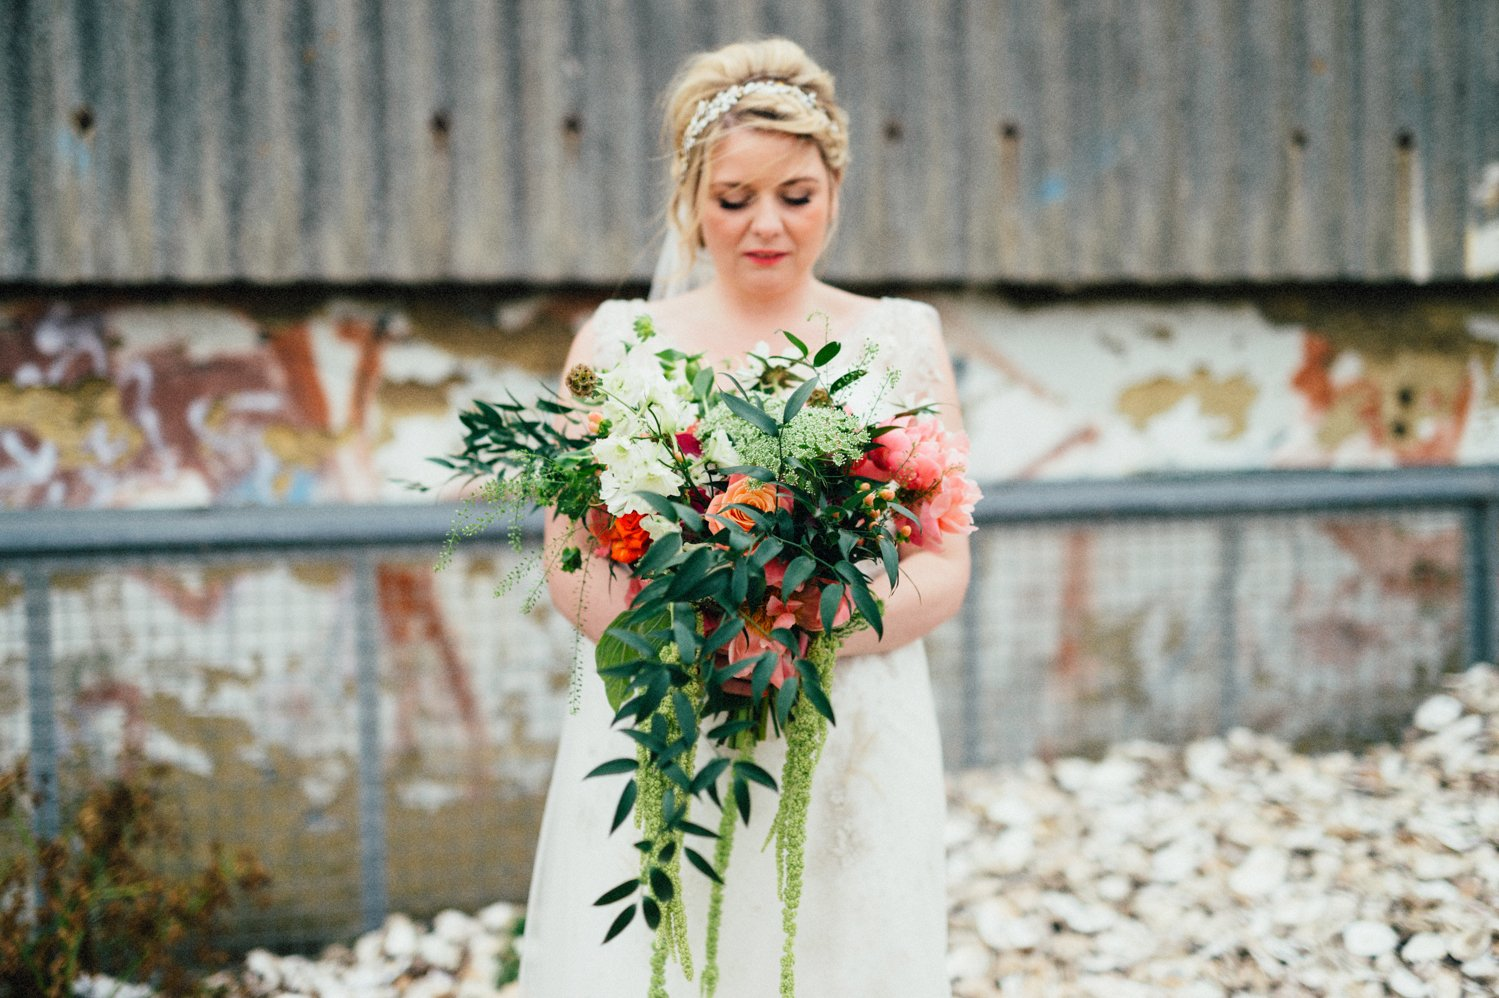 Bride holding A Vintage Wedding bouquet